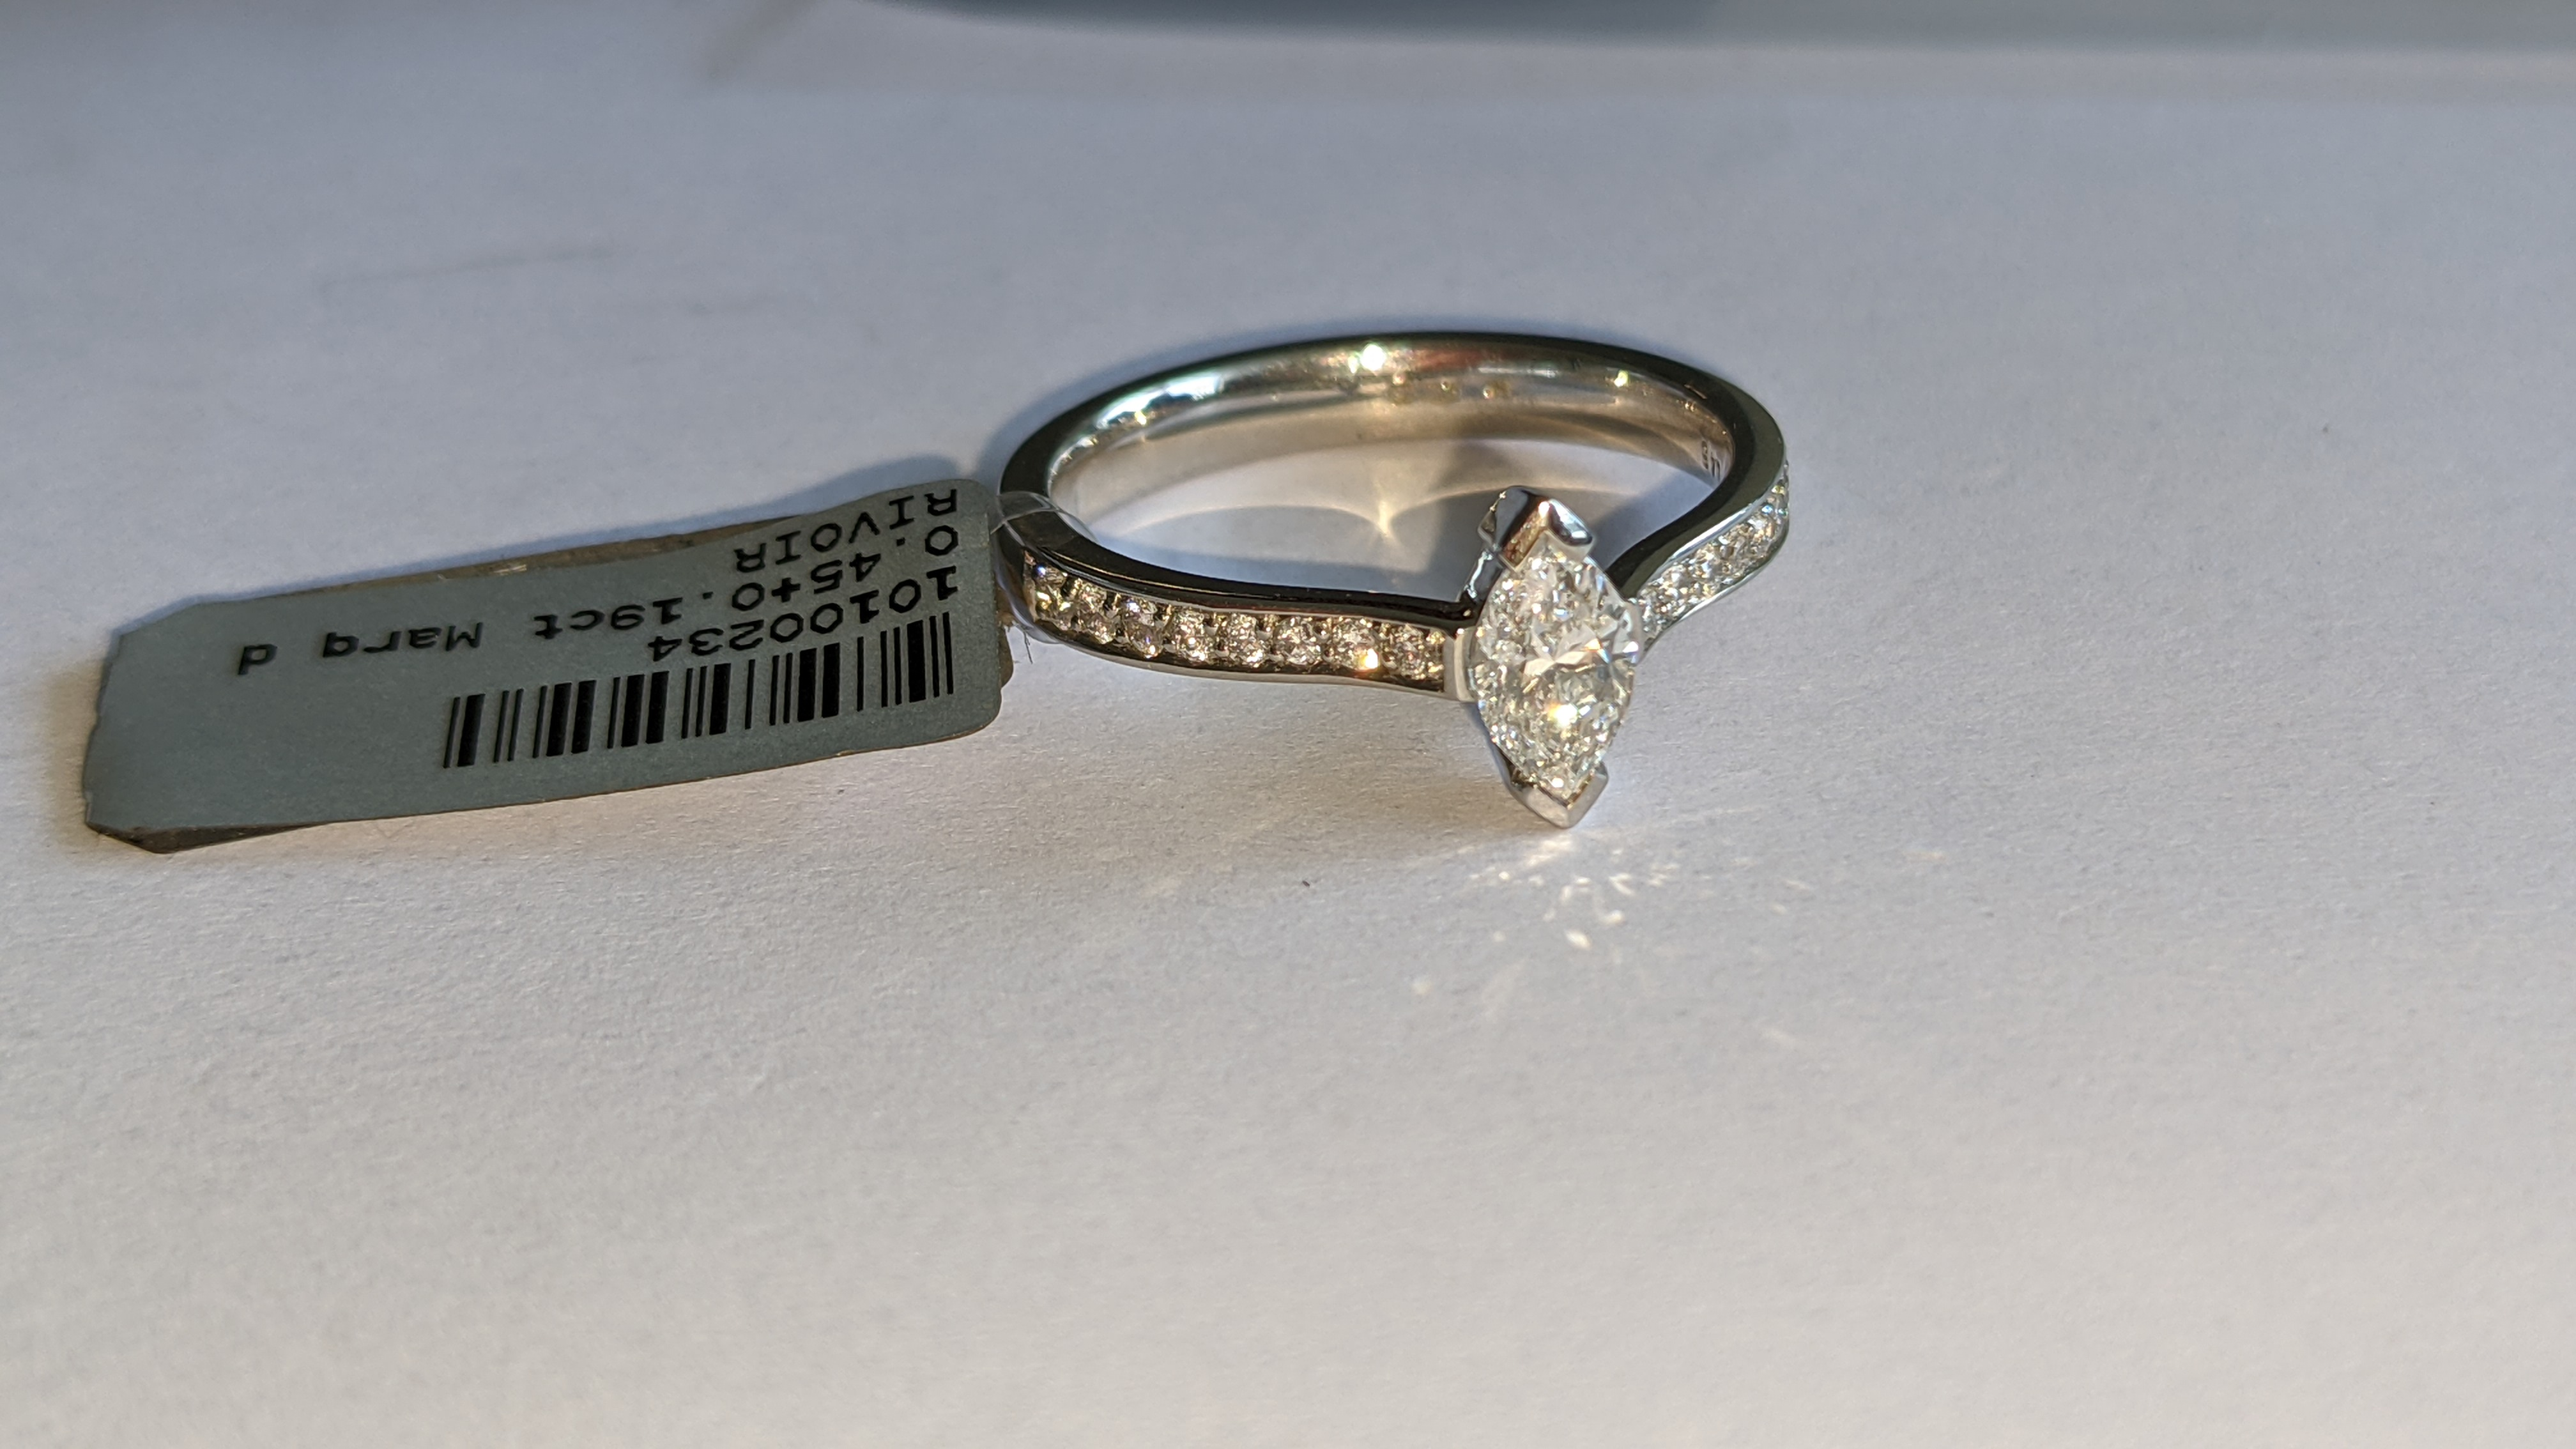 Platinum 950 ring with marquise shaped central diamond plus diamonds on the shoulders either side, t - Image 7 of 16